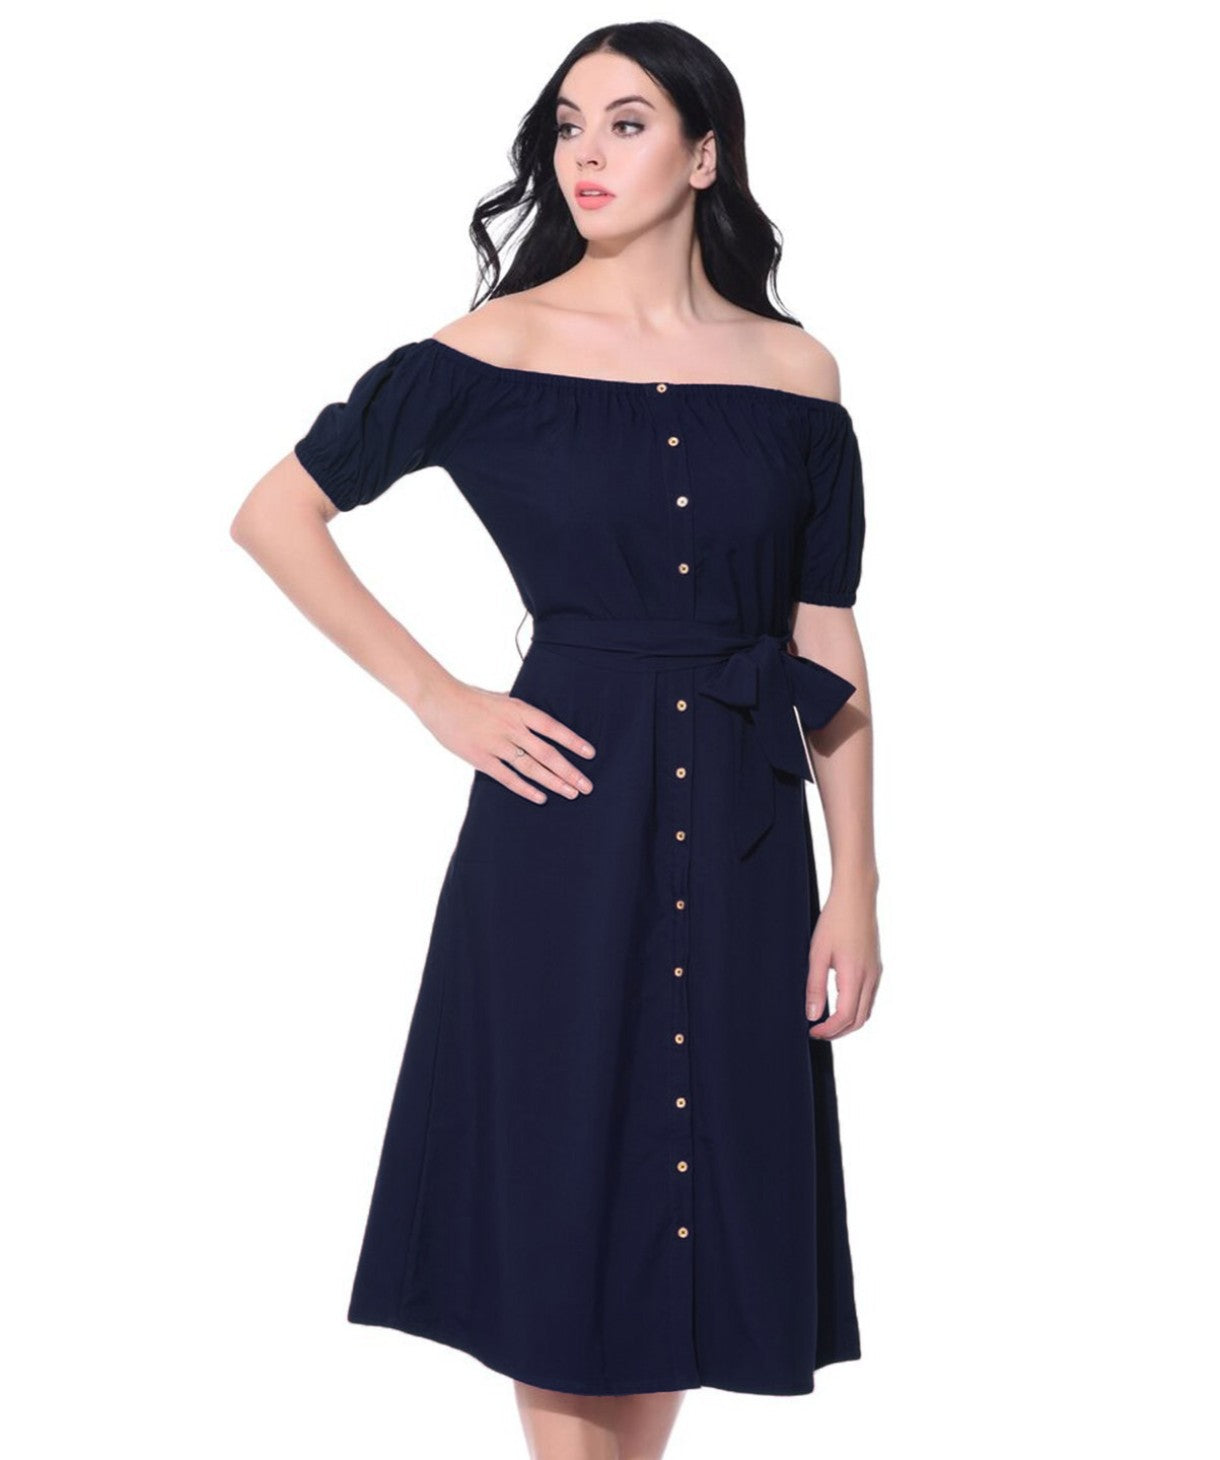 Solid Navy Off Shoulder Buttoned Down Dress - Uptownie